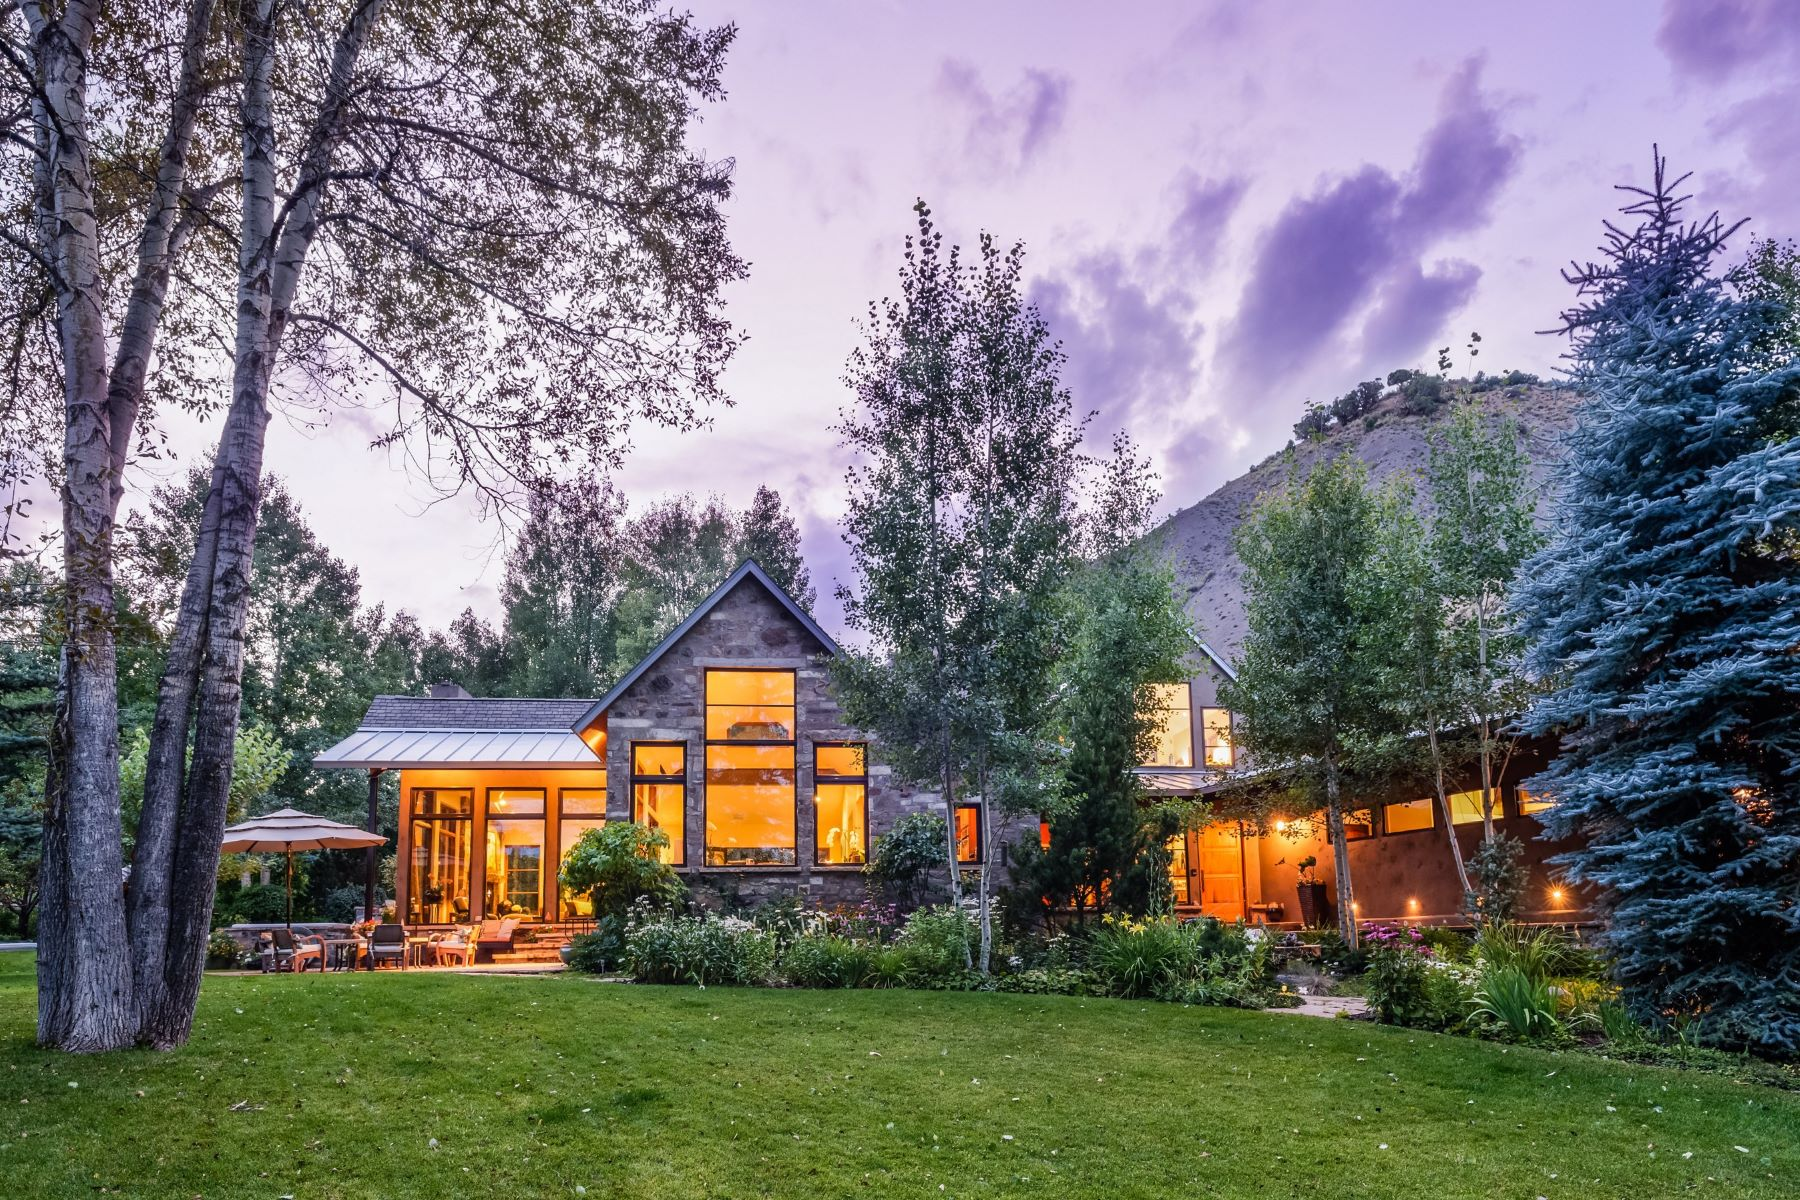 Single Family Home for Active at Peaceful Riverfront Setting 1765 Snowmass Creek Road Snowmass, Colorado 81654 United States